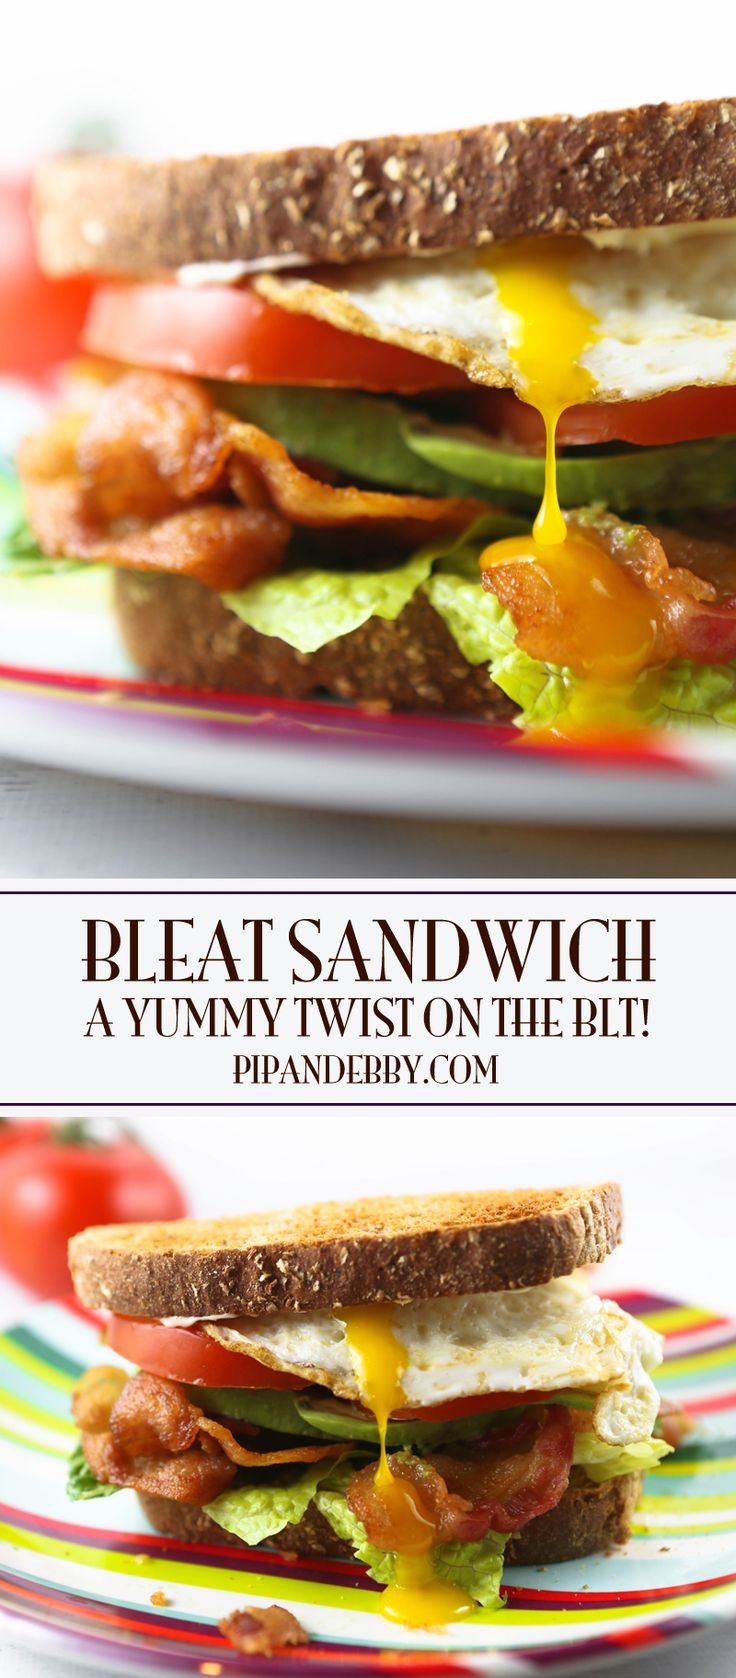 BLEAT Sandwich (a yummy twist on the BLT)   Add avocado slices and an egg to the delicious BLT to take it to the next level!